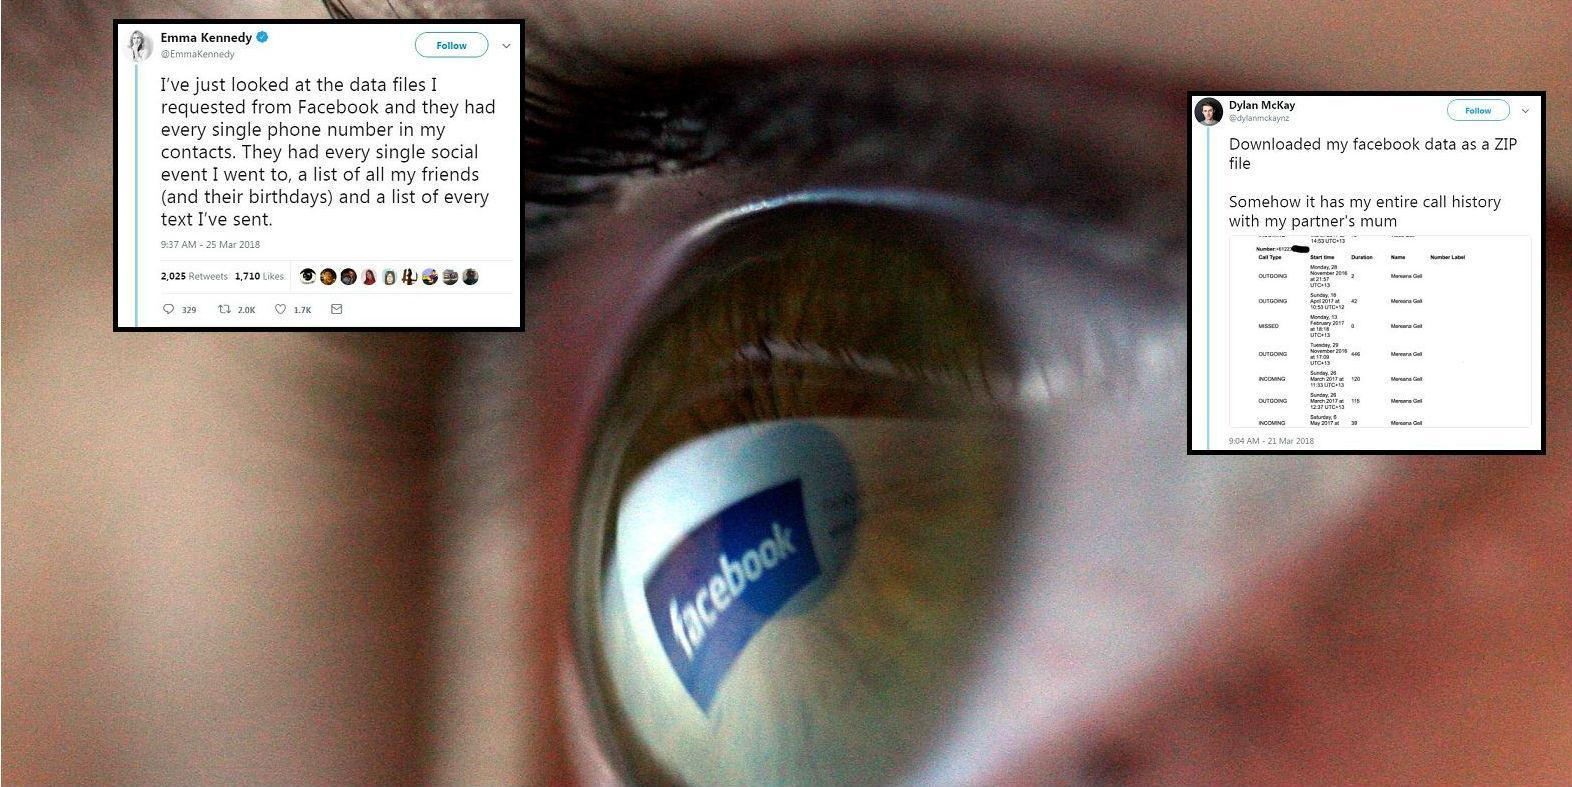 You can download everything Facebook knows about you and